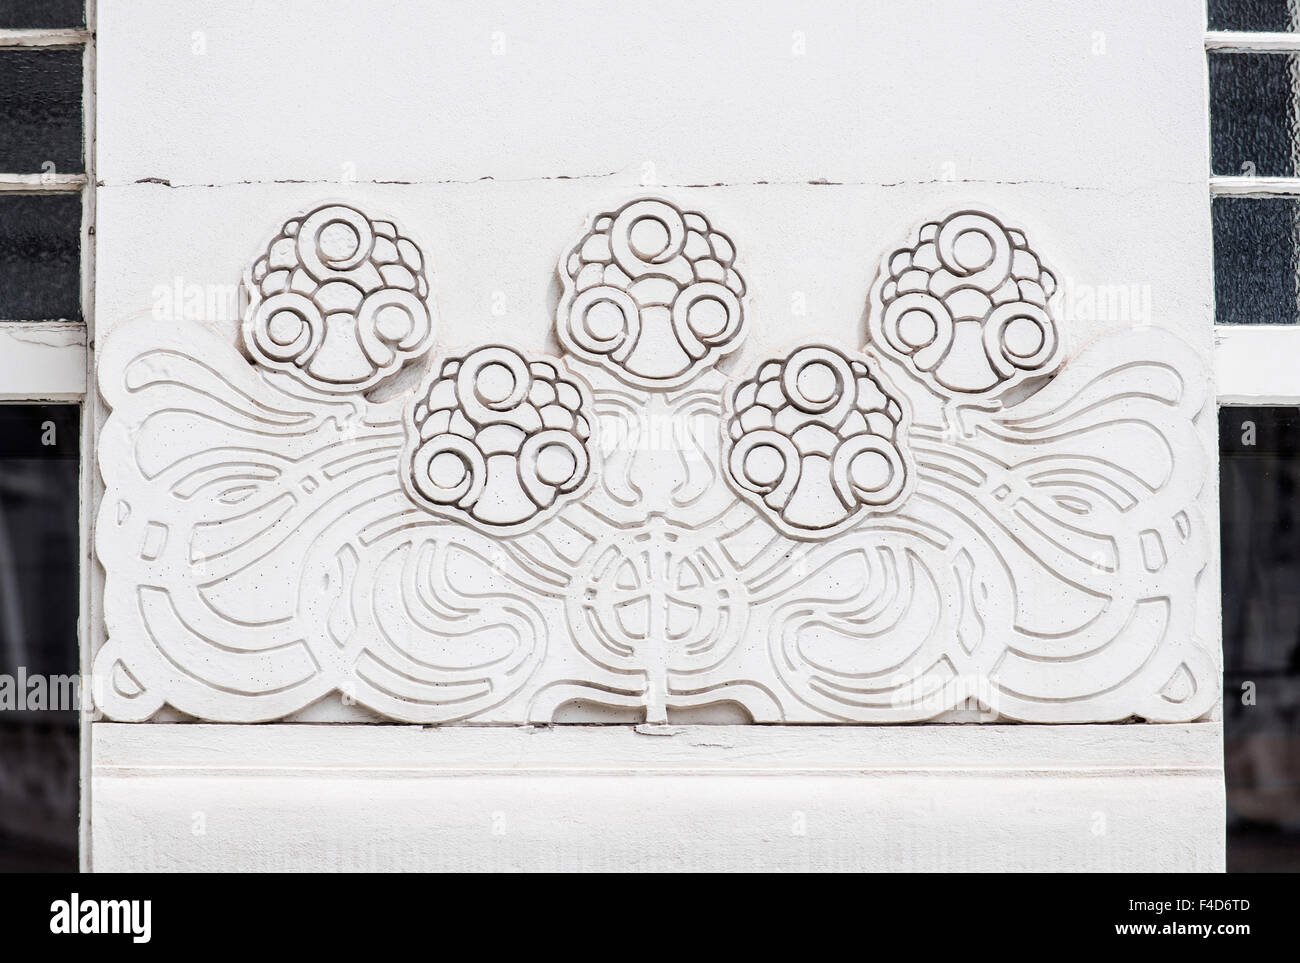 Austria, Vienna, Secession Hall Detail (Large format sizes available). - Stock Image